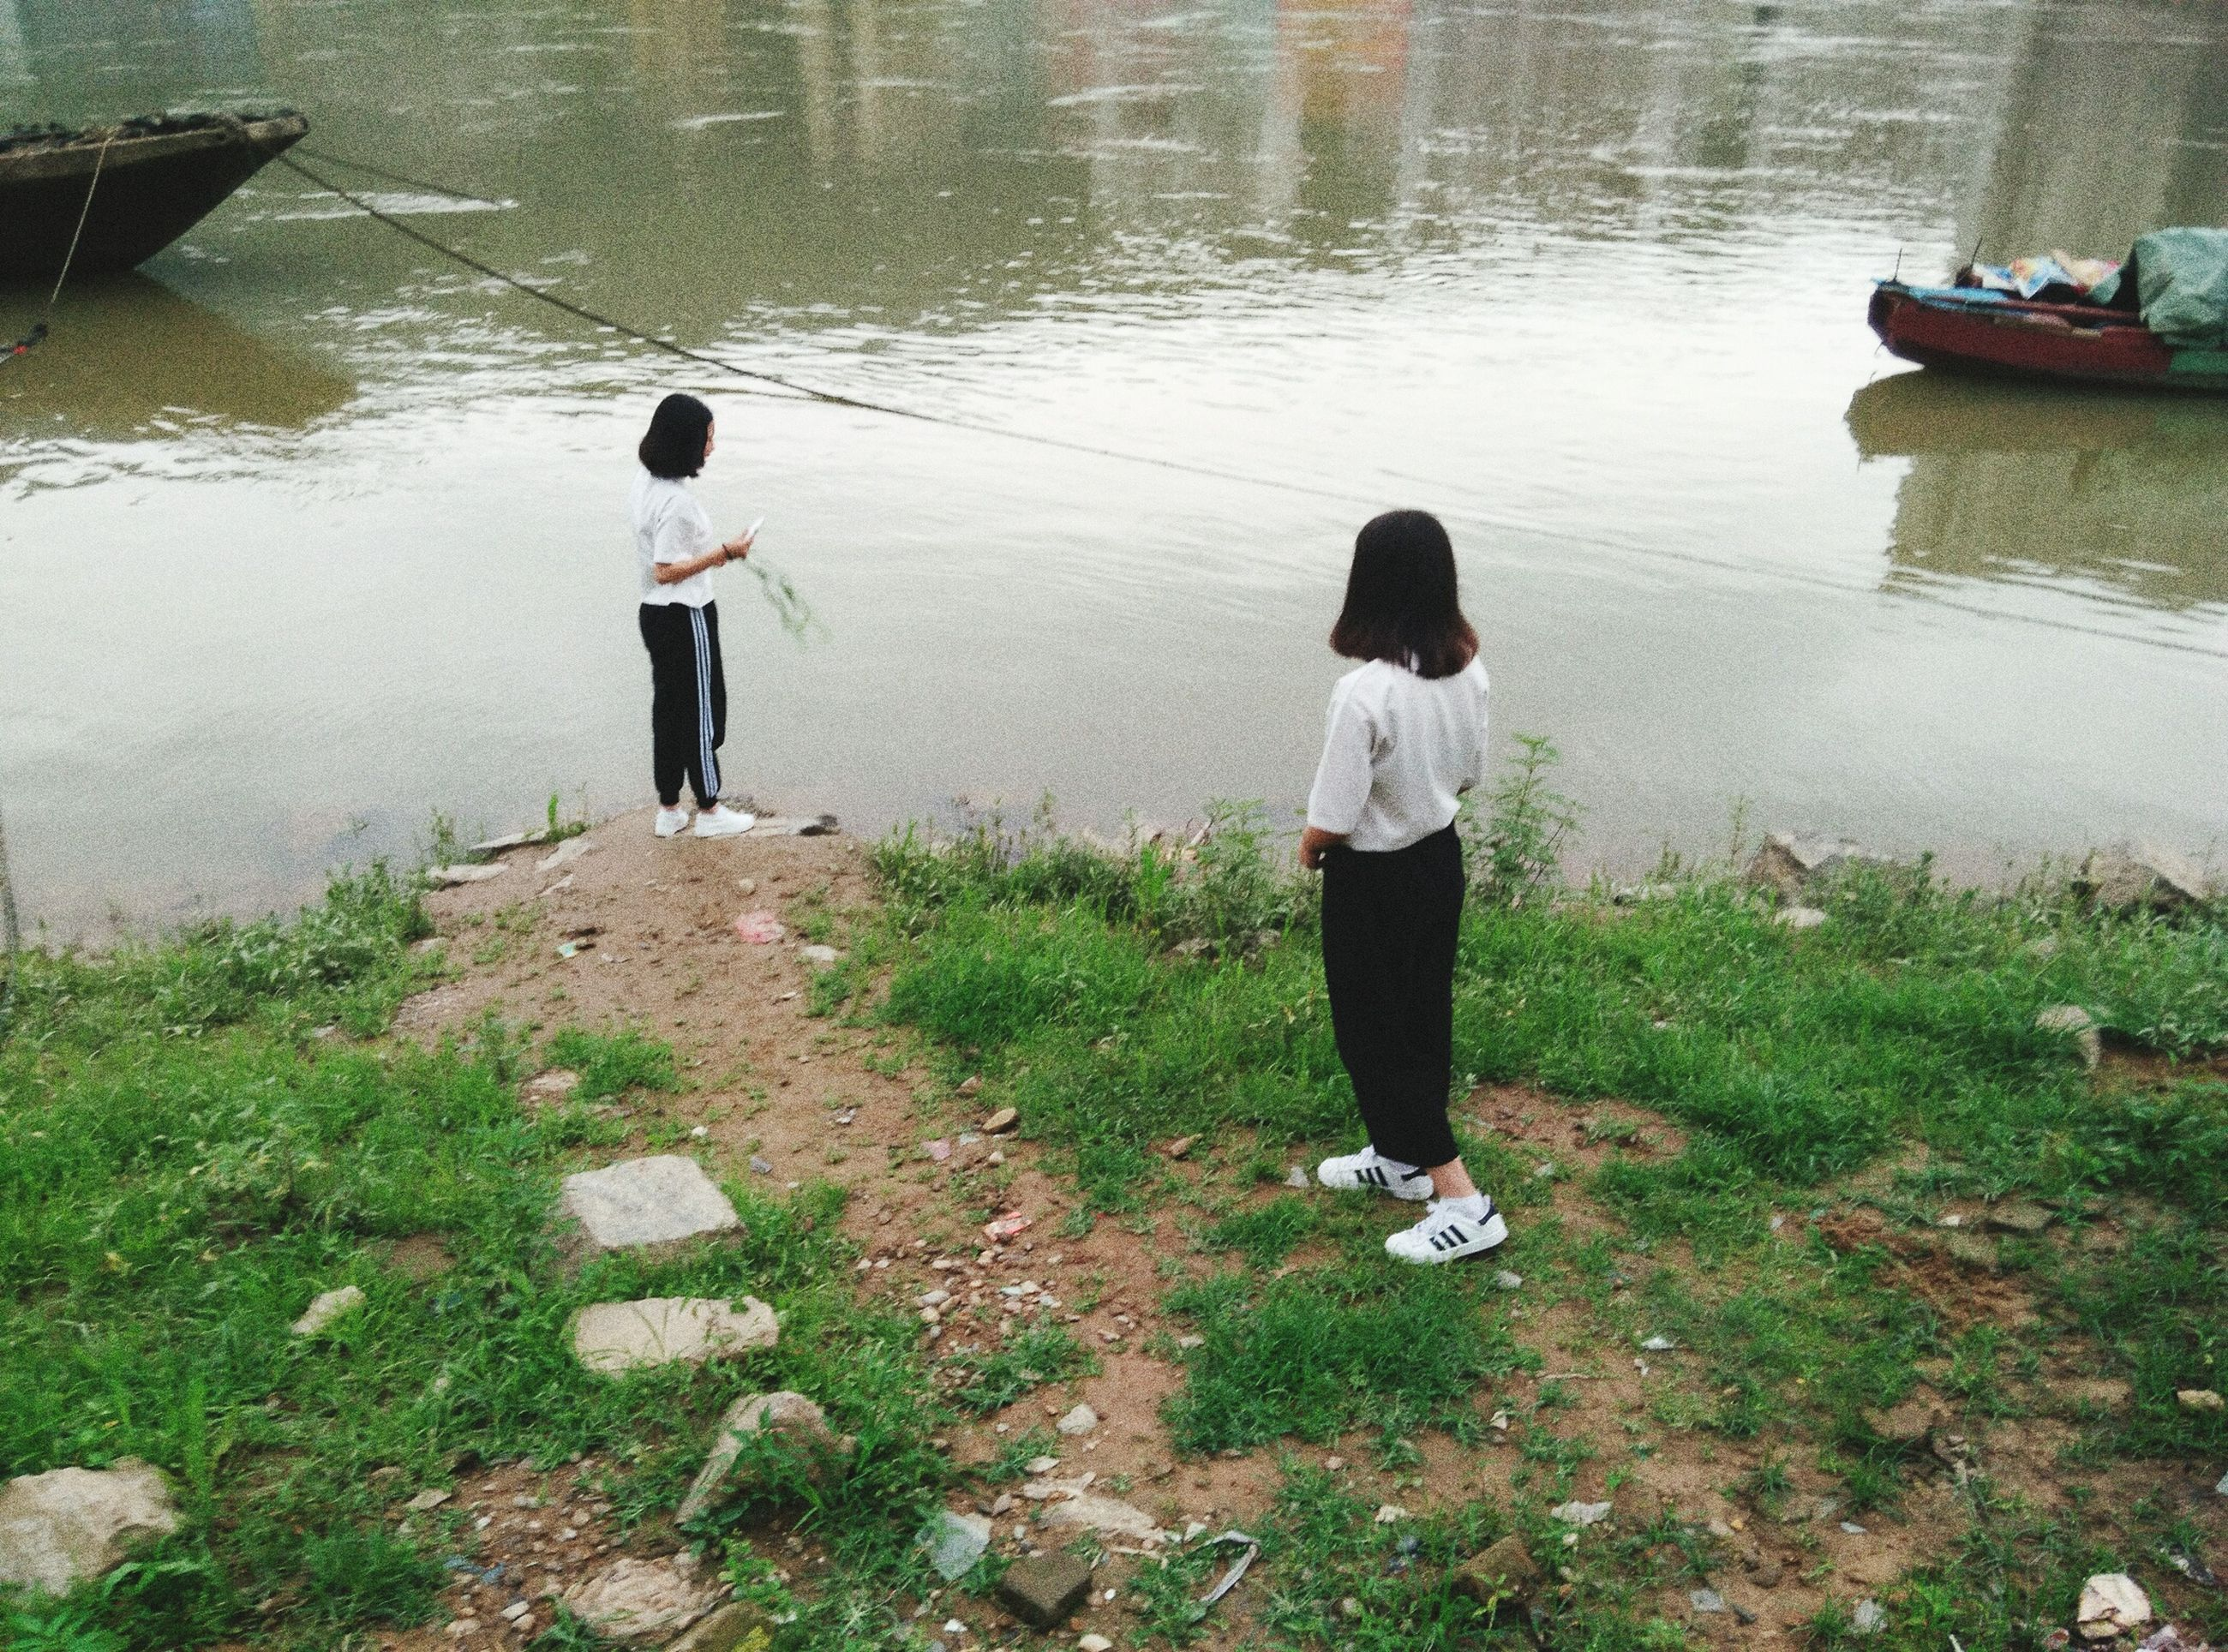 water, full length, lifestyles, rear view, casual clothing, leisure activity, lake, men, standing, grass, walking, person, boys, nature, day, river, lakeshore